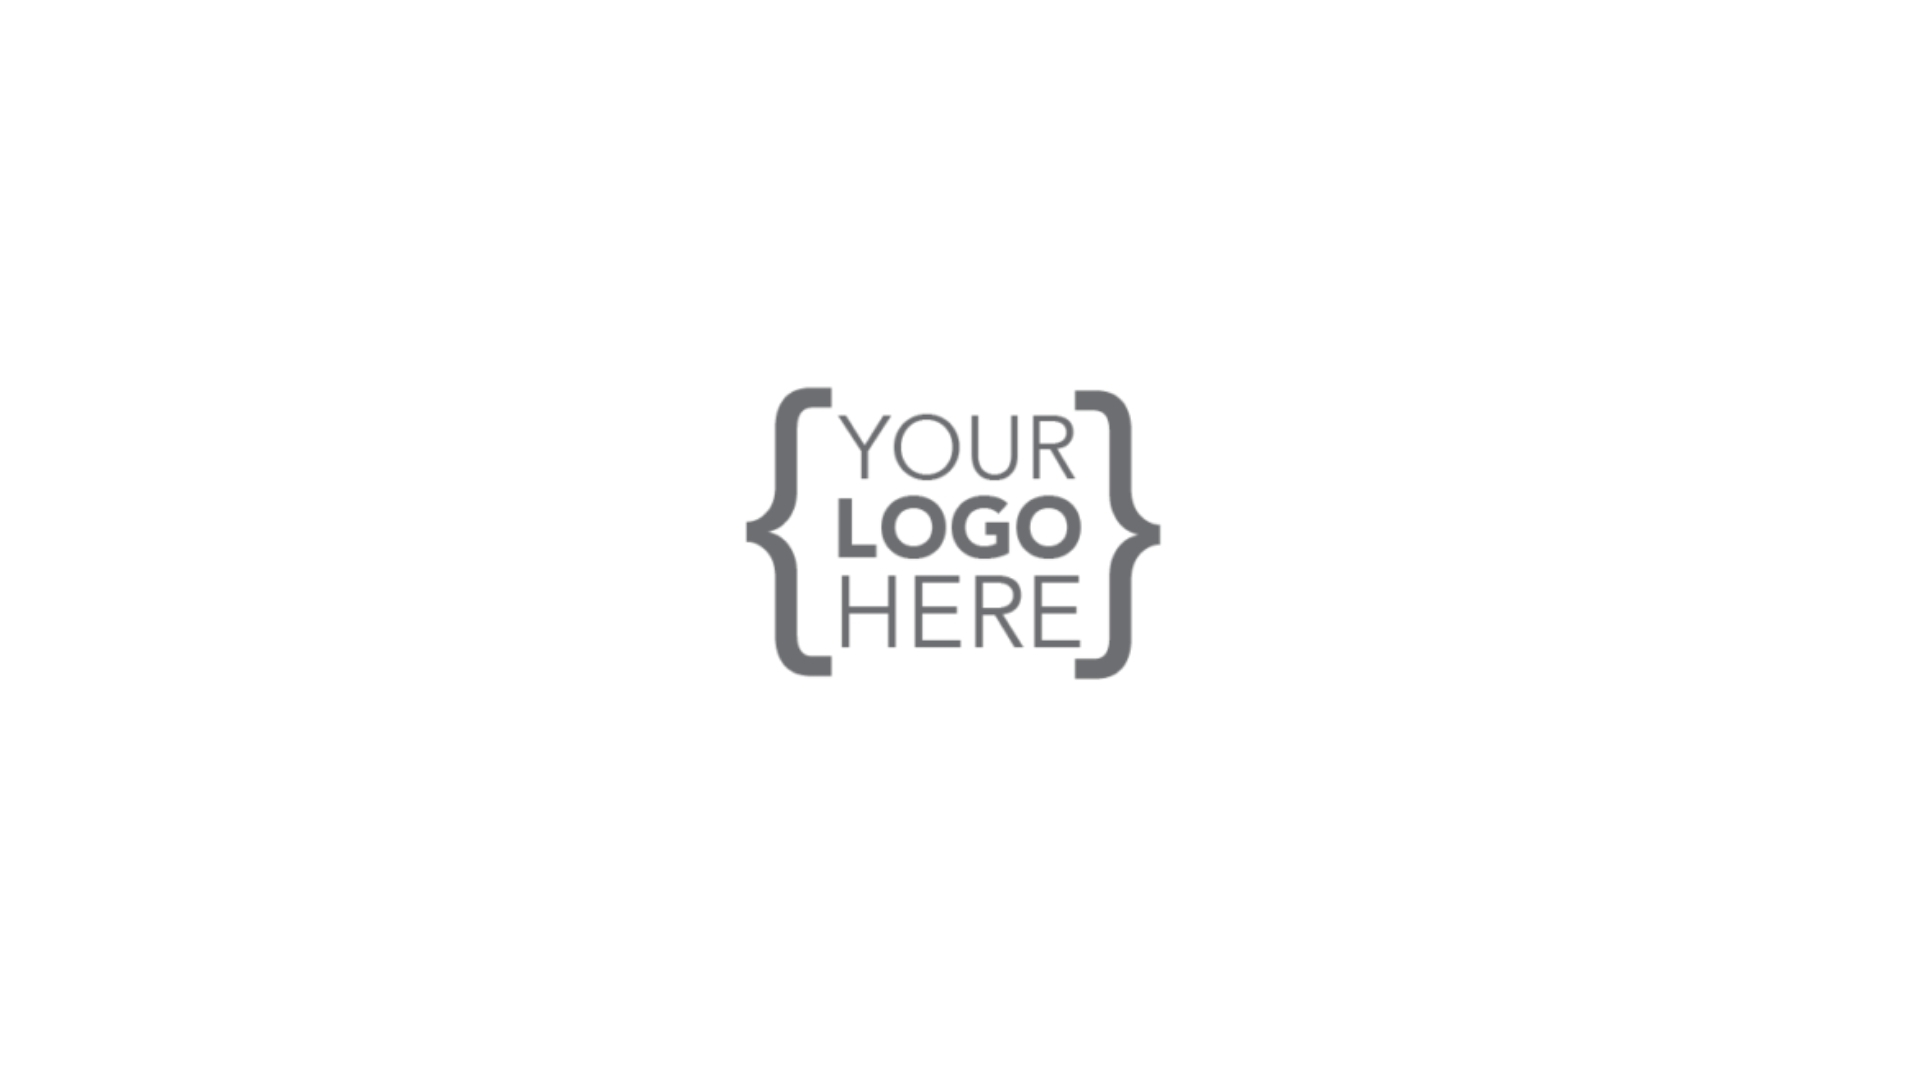 white label your logo here